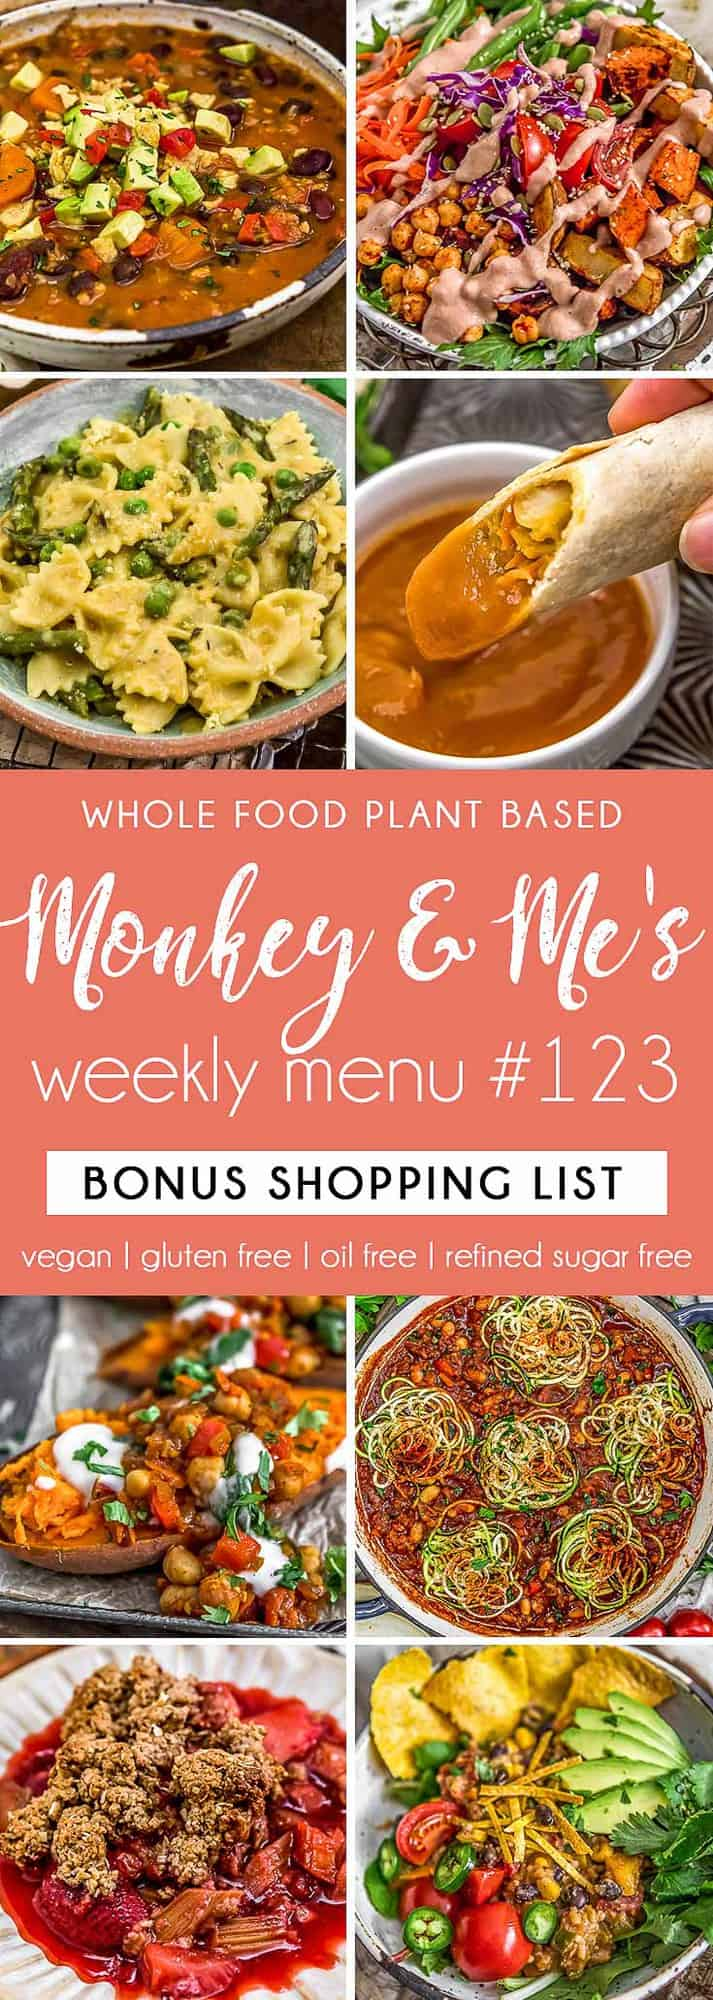 Monkey and Me's Menu 123 featuring 8 recipes